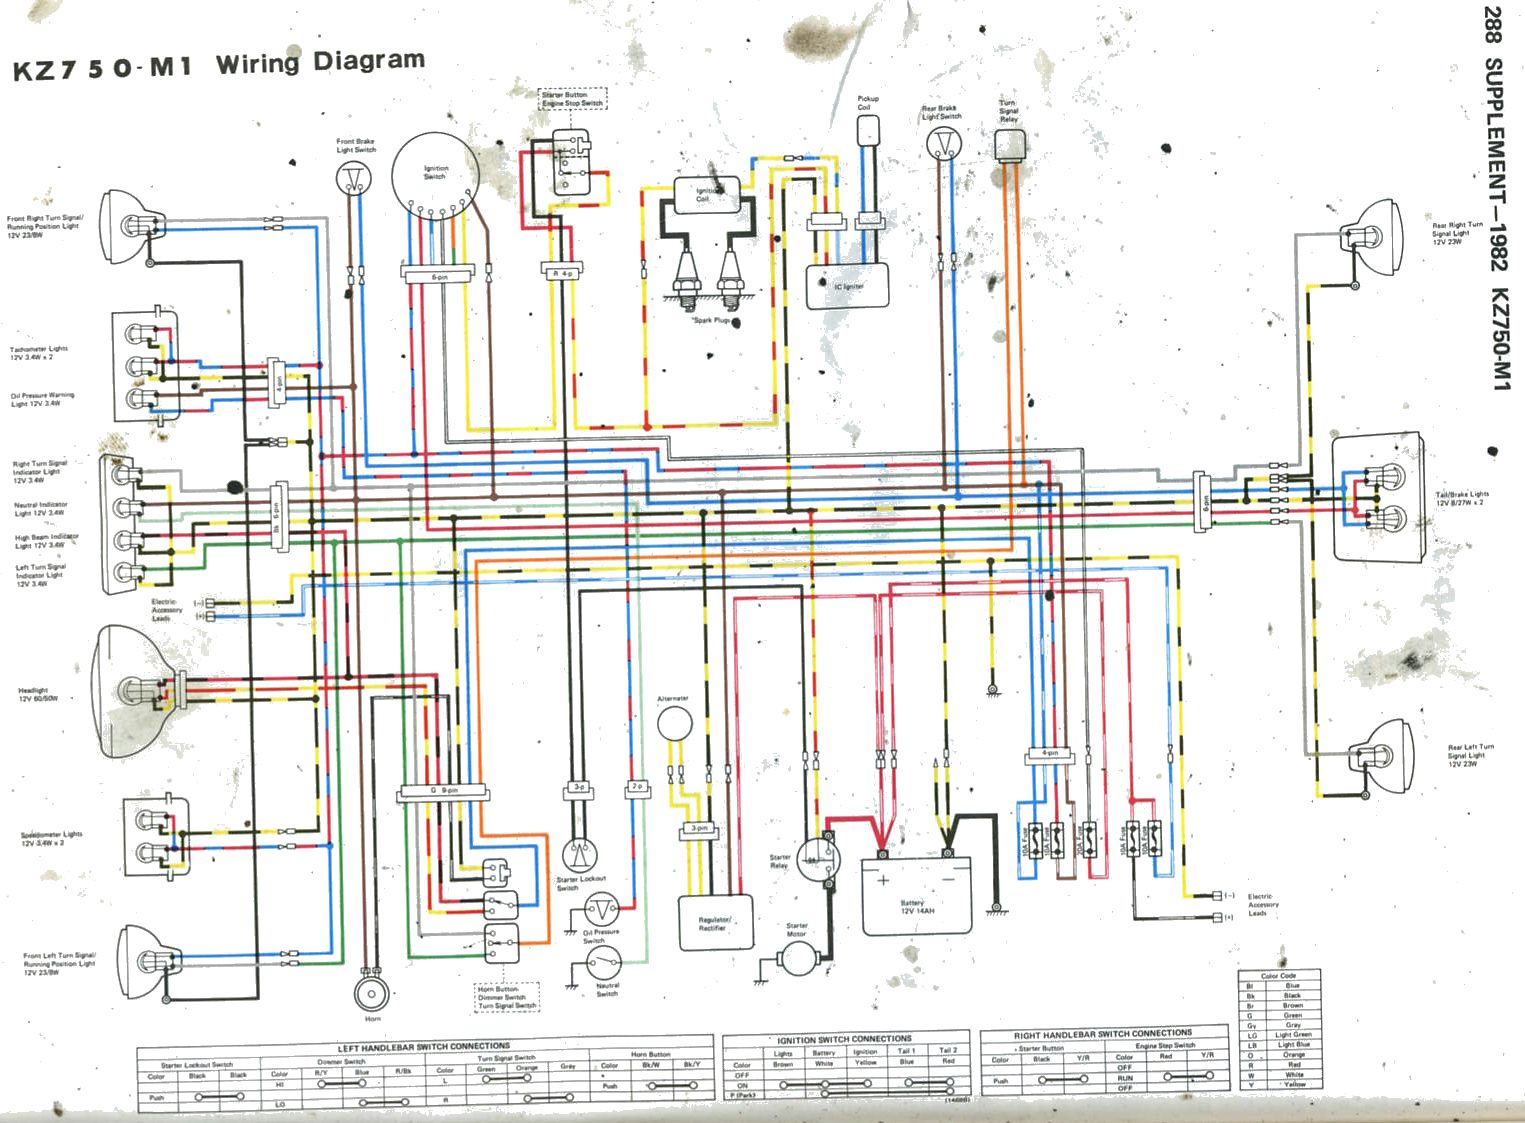 Gpz 750 Wiring Diagram Schematics Kawasaki 550 1982 Ignition Switch Kzrider Forum Kz Z1 Z